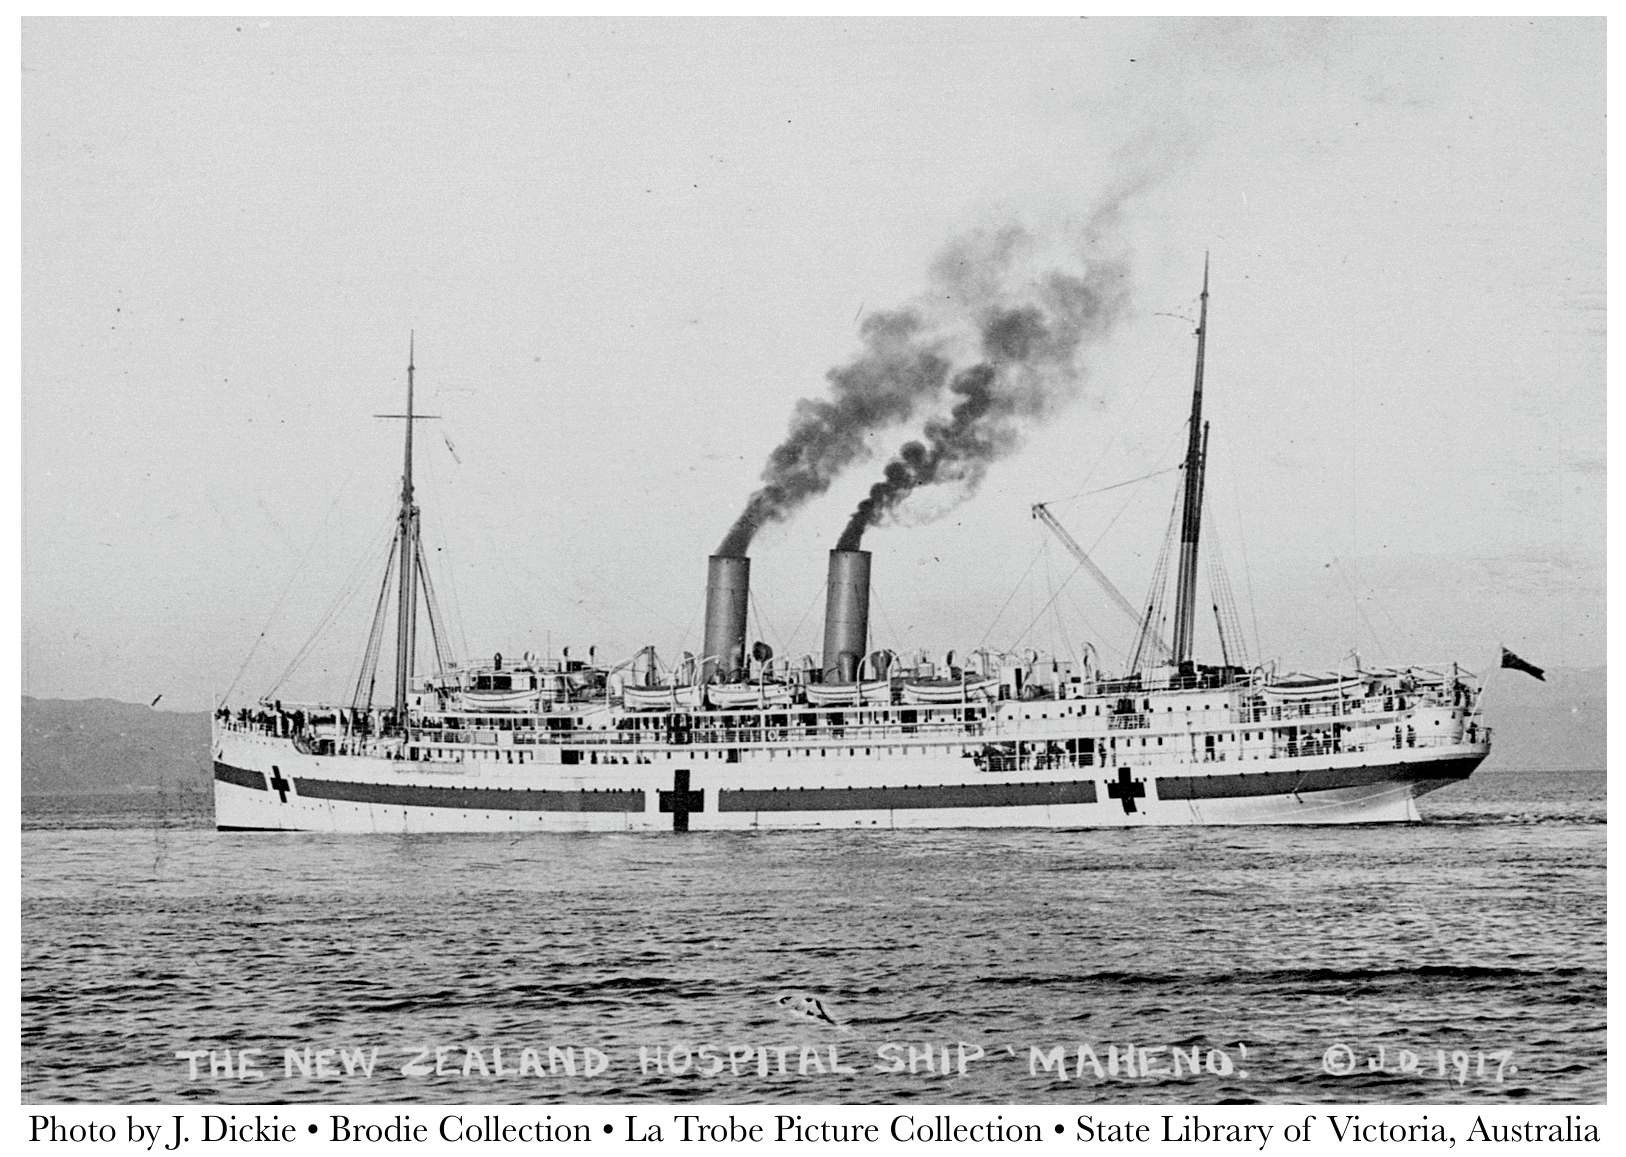 New Zealand Hospital Ship Maheno, State Library of Victoria